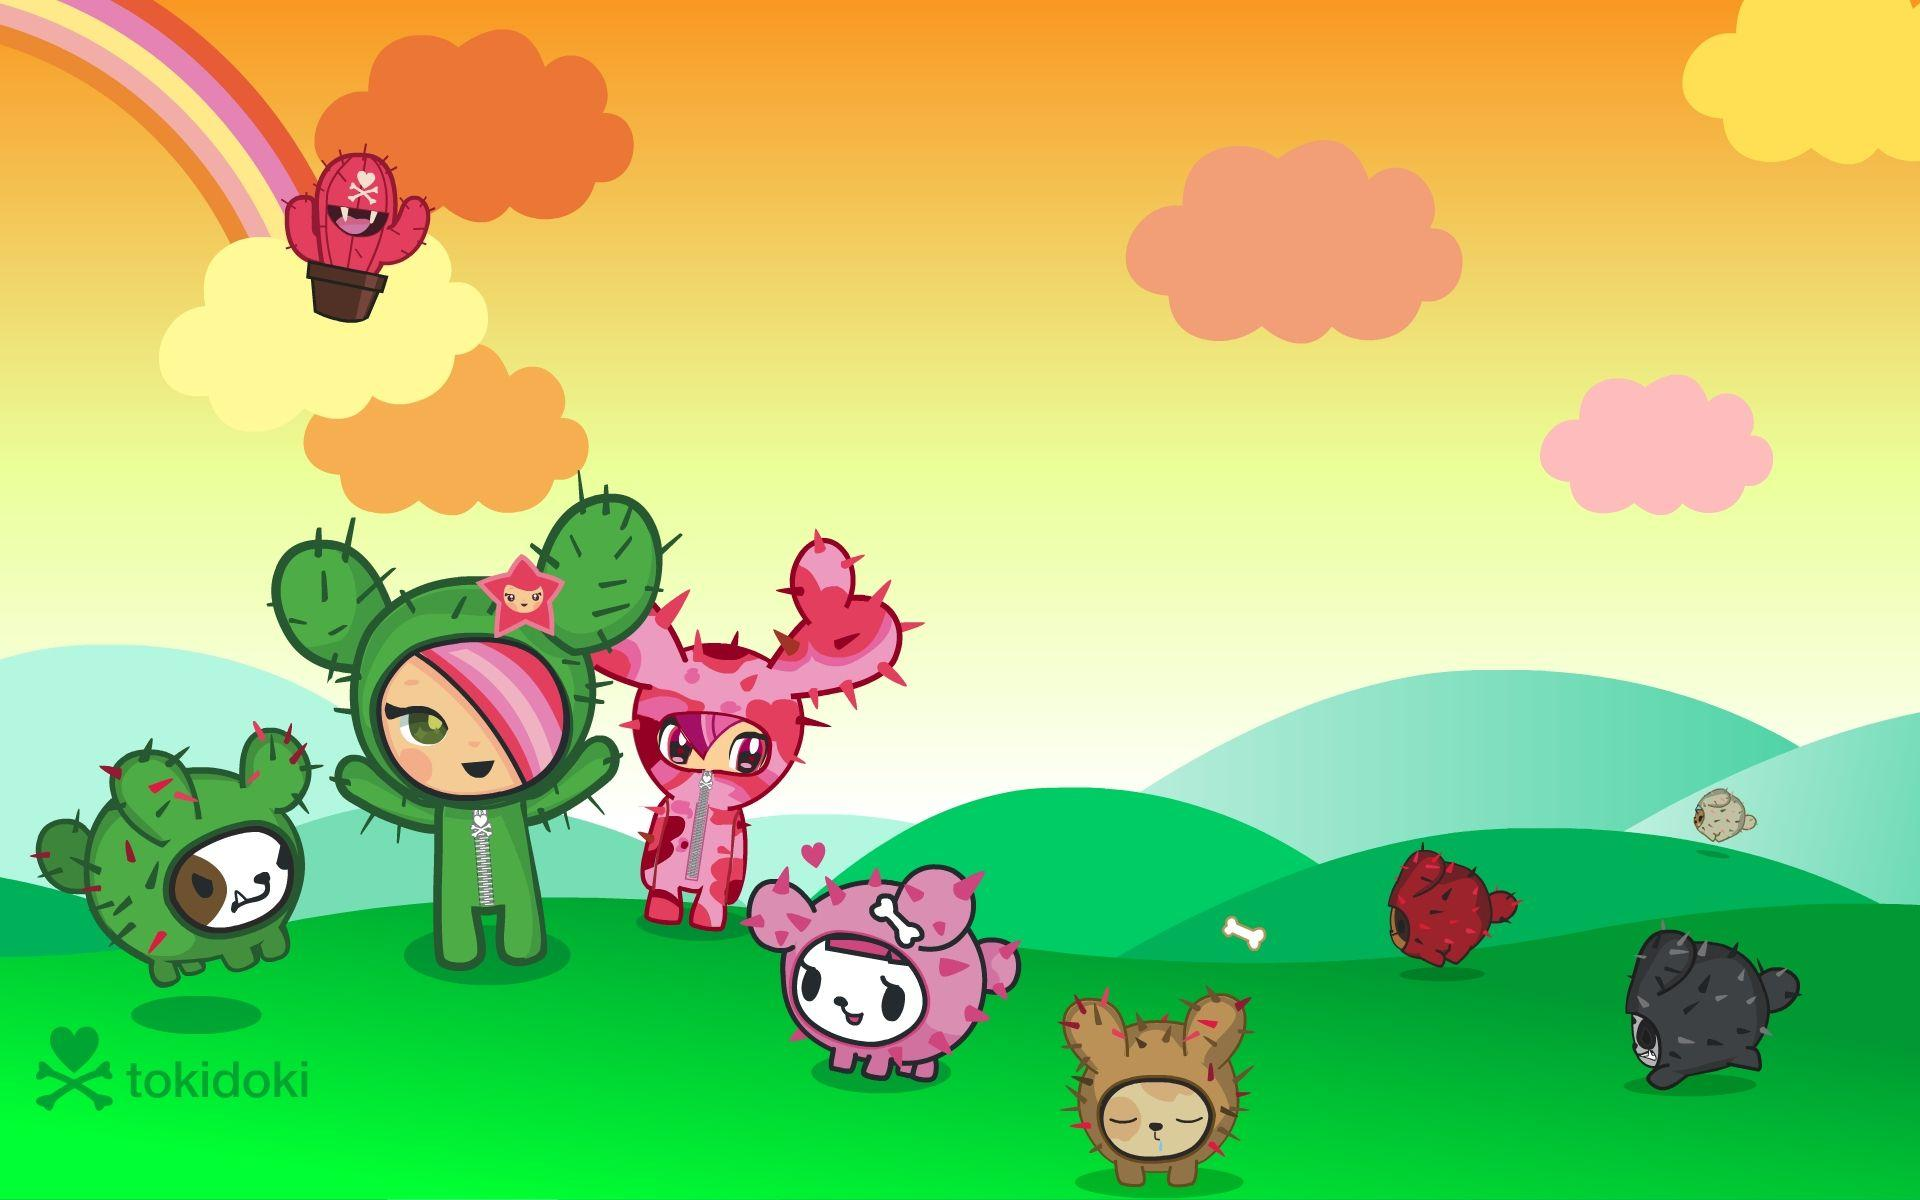 1920x1200 Images of Tokidoki Wallpapers Deserts - #FAN